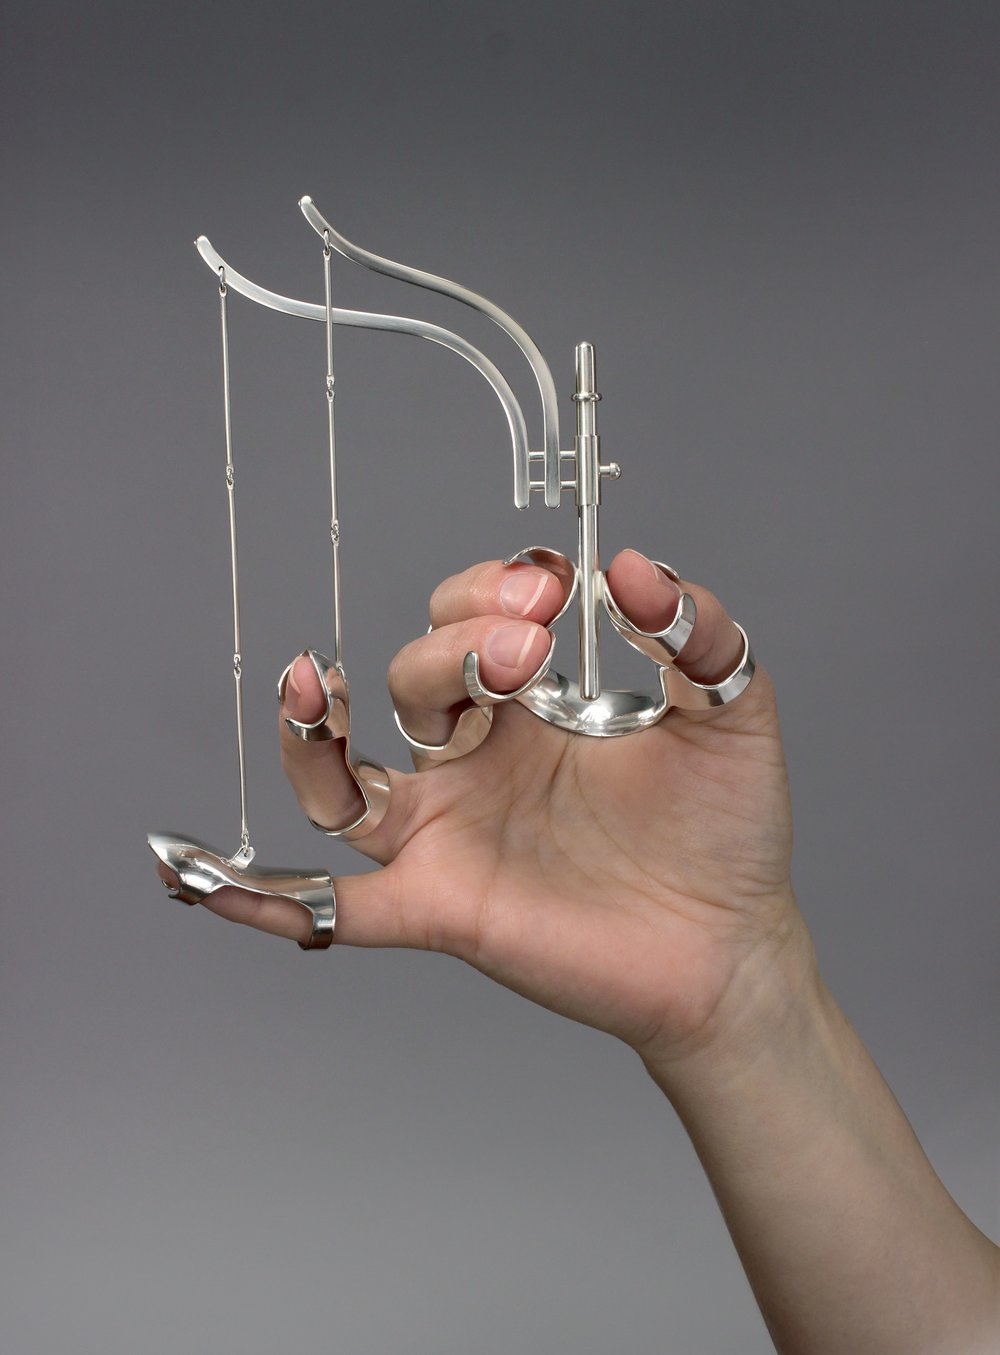 Ornamental Hands: Figure Four (shown worn) by Jennifer Crupi. Photo: Christian Luis.